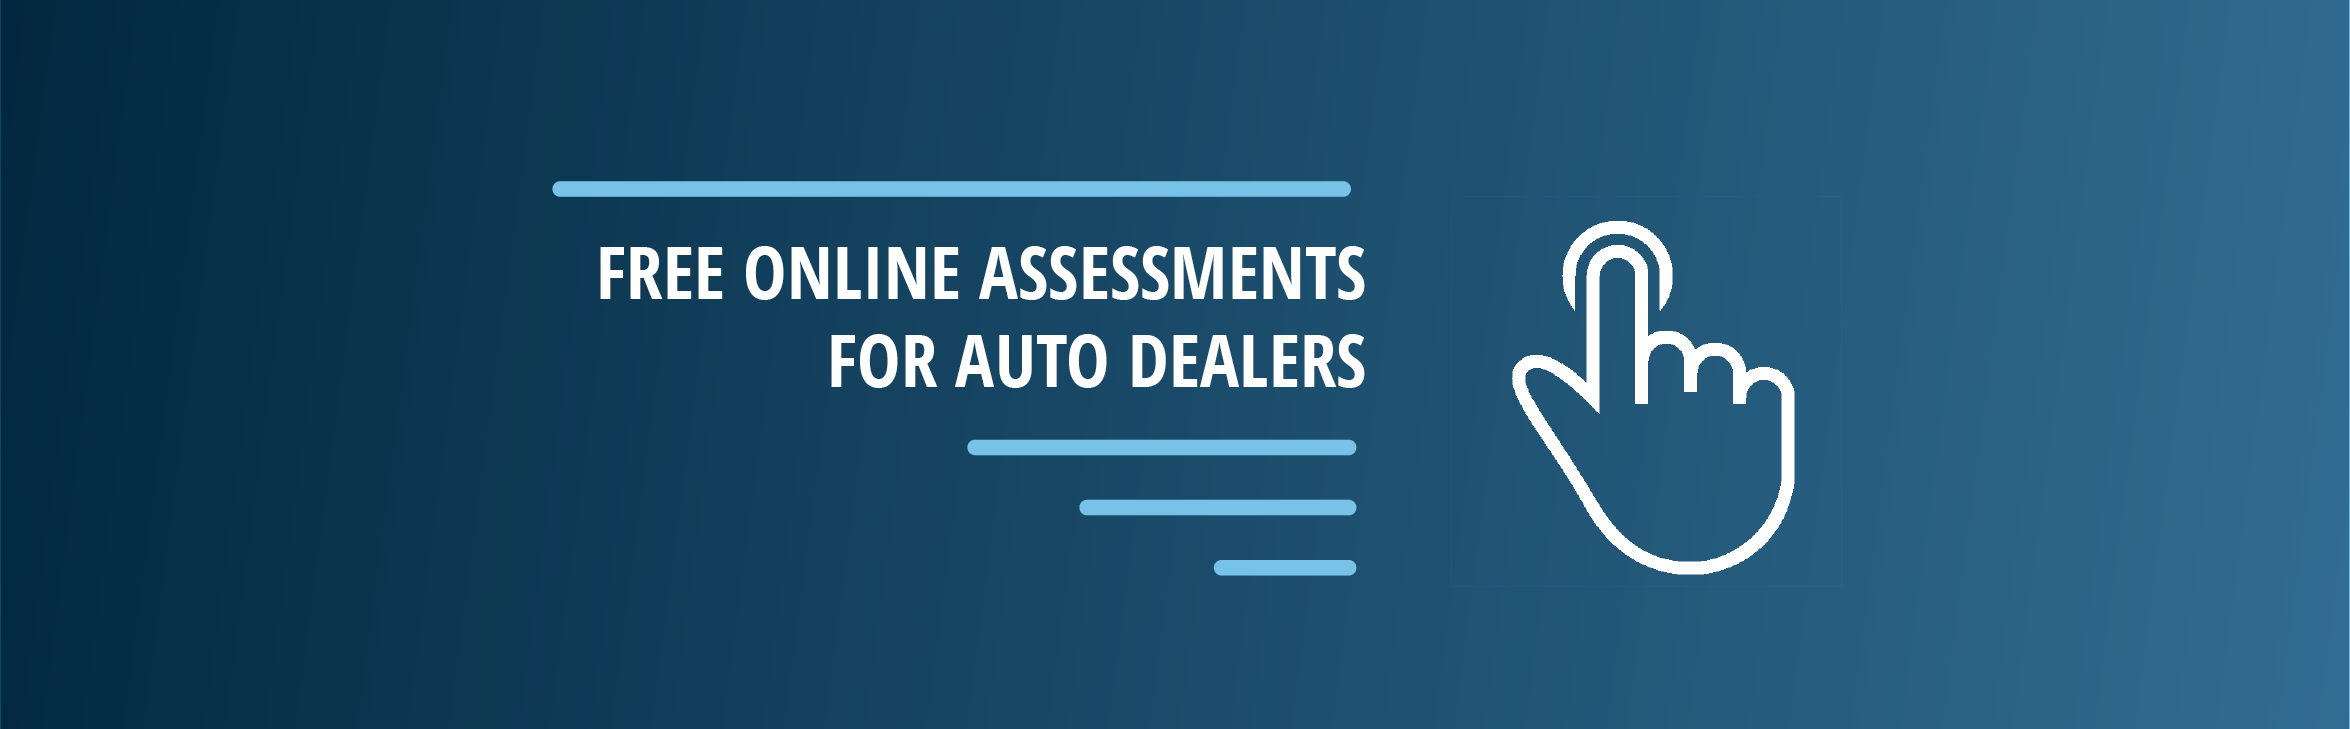 Free Online Assessments for Auto Dealers.png